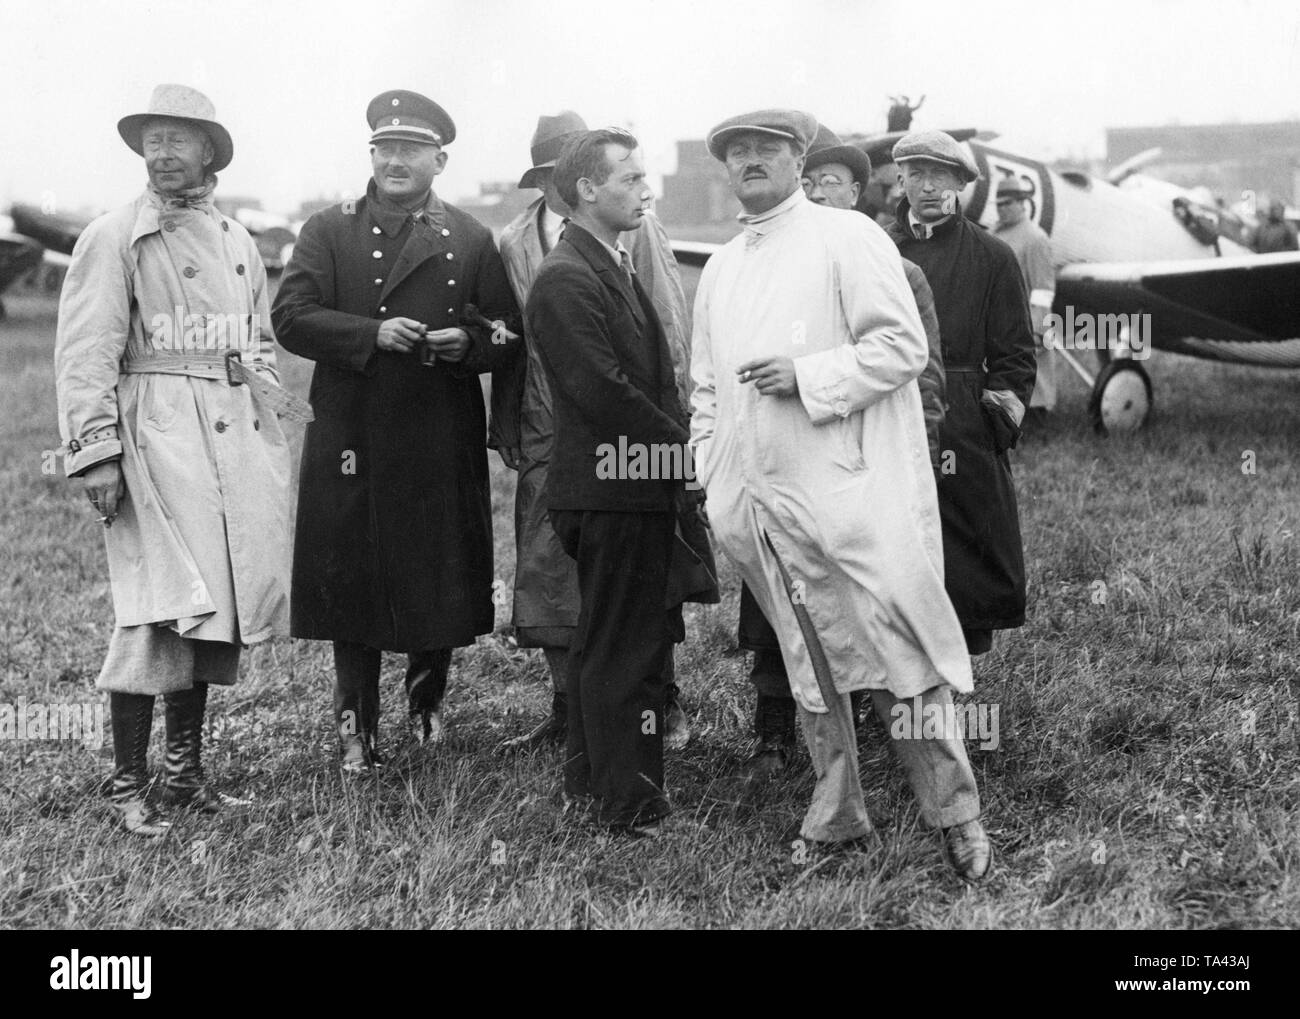 Crown Prince Wilhelm (left) and the aircraft designer Helmut Hirth (4th from left in a light coat) watch the start of the Deutschlandflug with their companions on the airfield Berlin-Staaken. - Stock Image